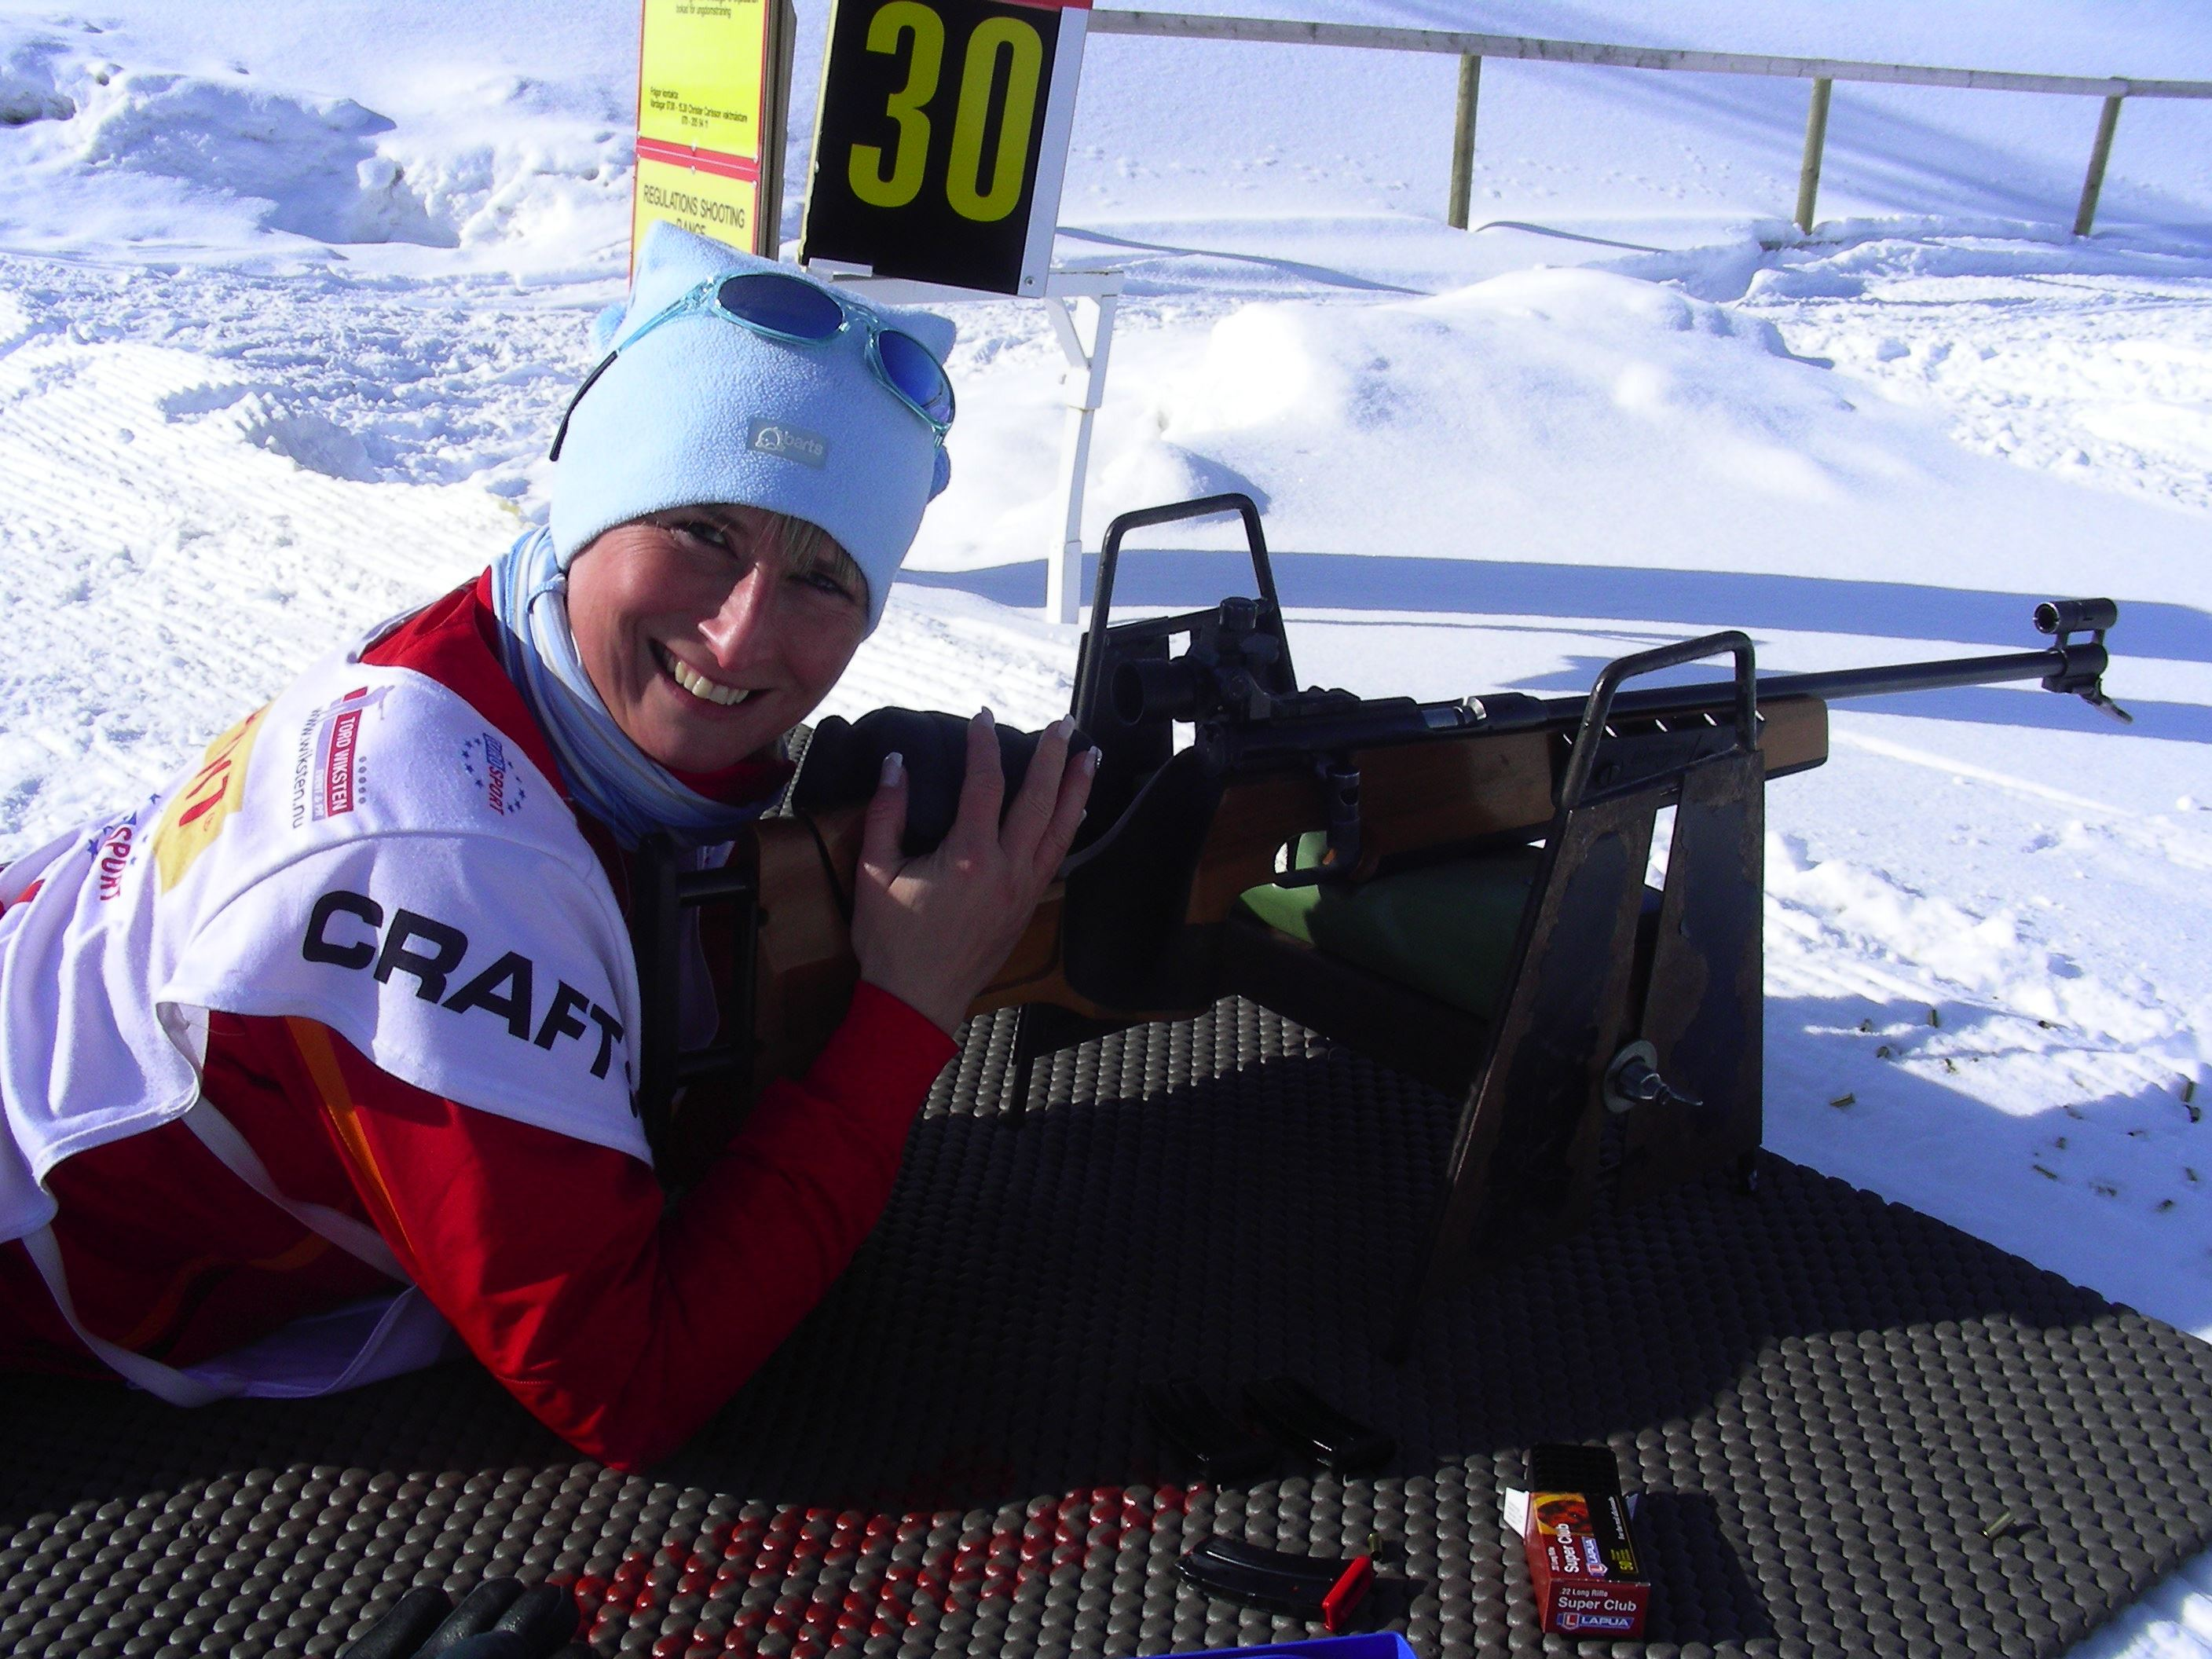 Foto: Tord Wiksten,  © Copy: Tord Wiksten, Try the Biathlon